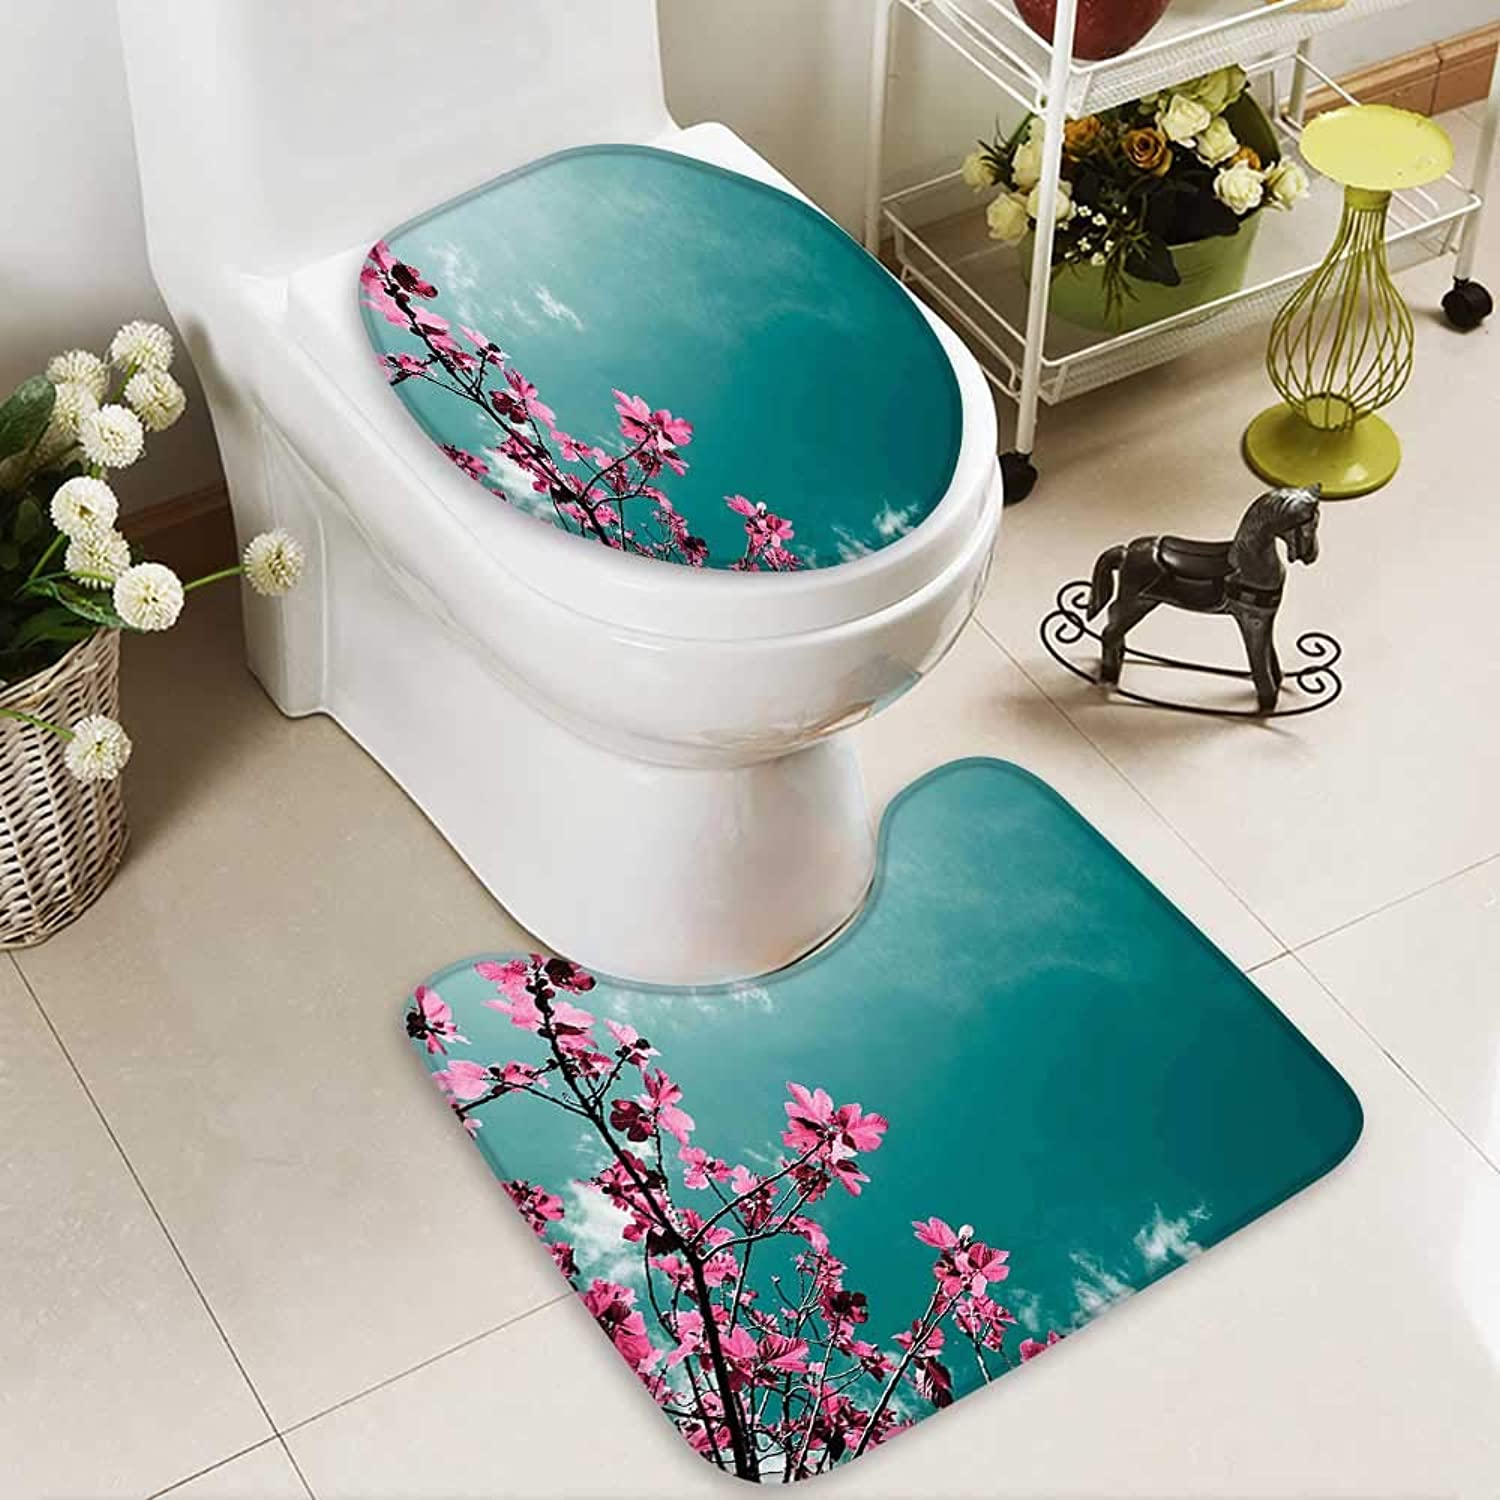 SOCOMIMI Non-Slip Bathroom Rug Mats Set Tree Florets Sunny Sky Exotic Summer Spring Plants Scenic Nature View Teal 2 Pieces Microfiber Soft